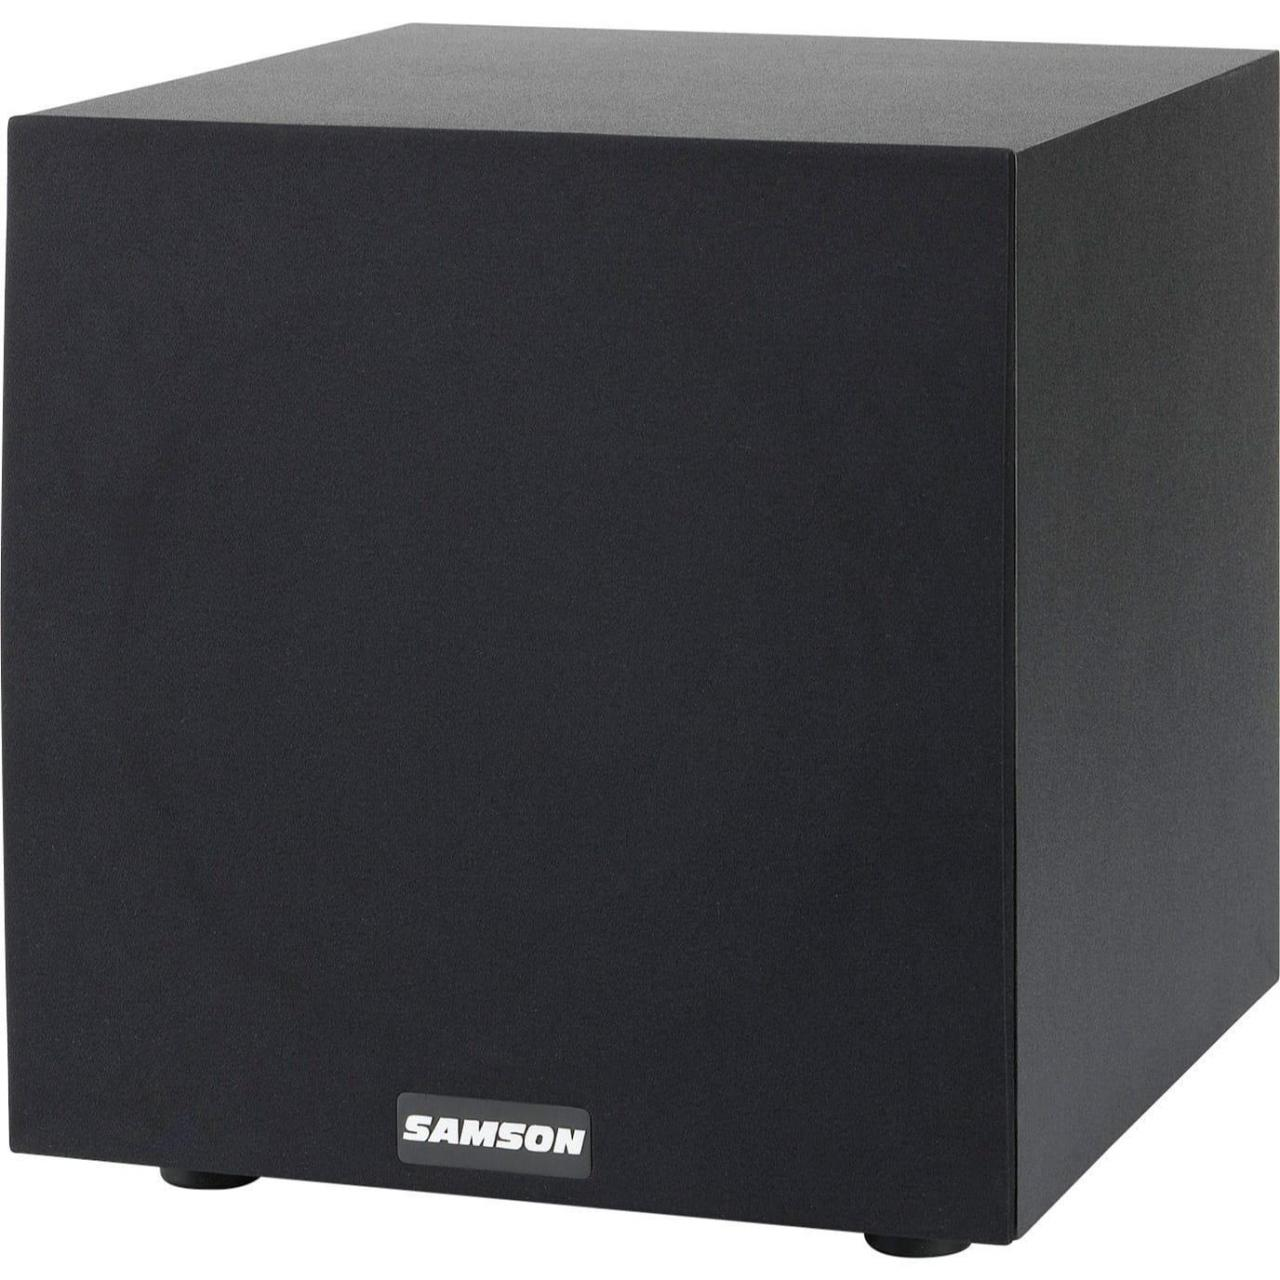 Quality Recording Samson MediaOne 10S Active Studio Subwoofer for sale